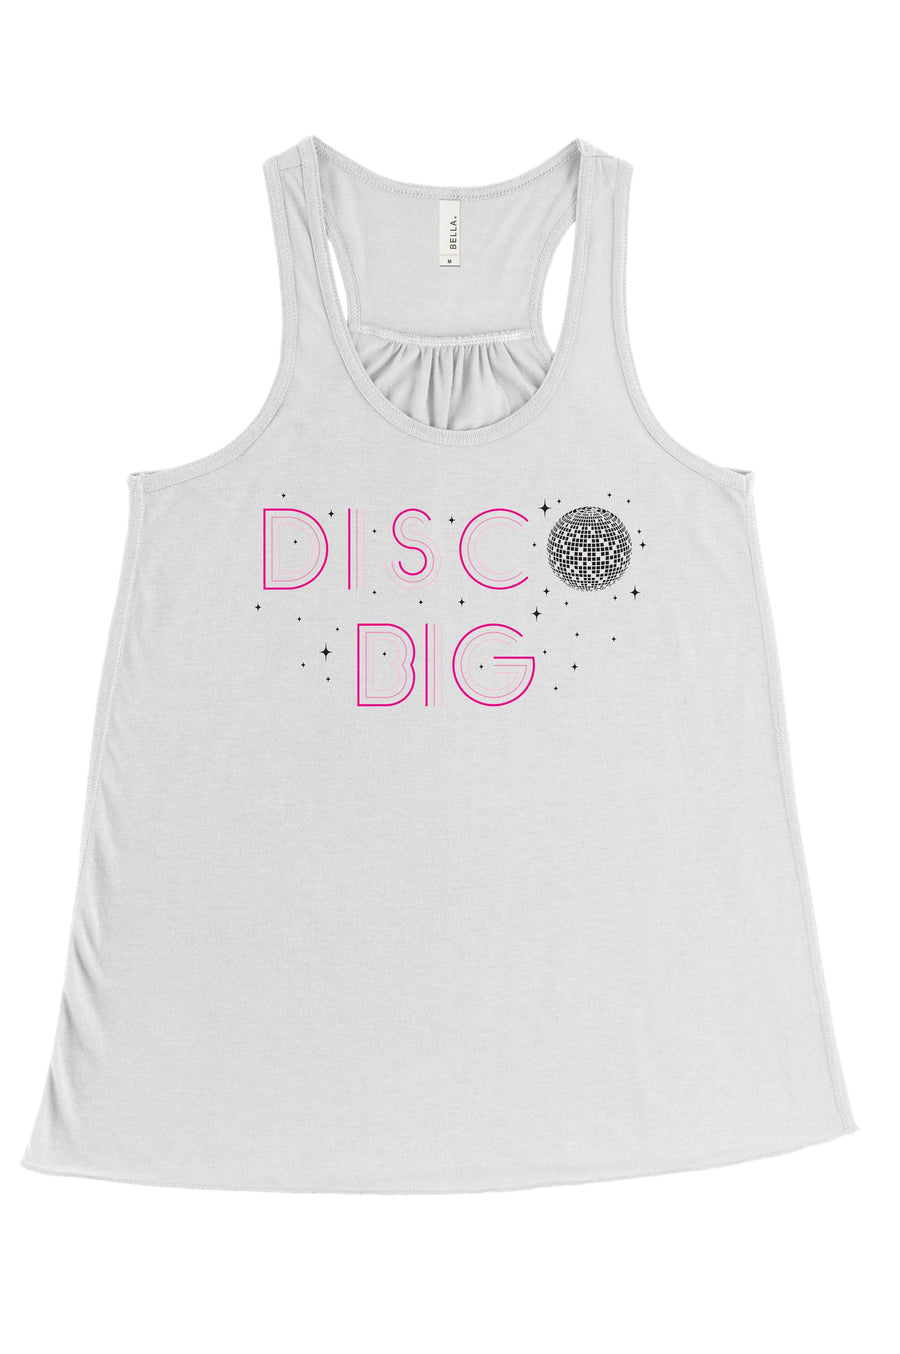 Disco Big - Disco Little Big Little Bella Canvas Flowy Racerback Tank